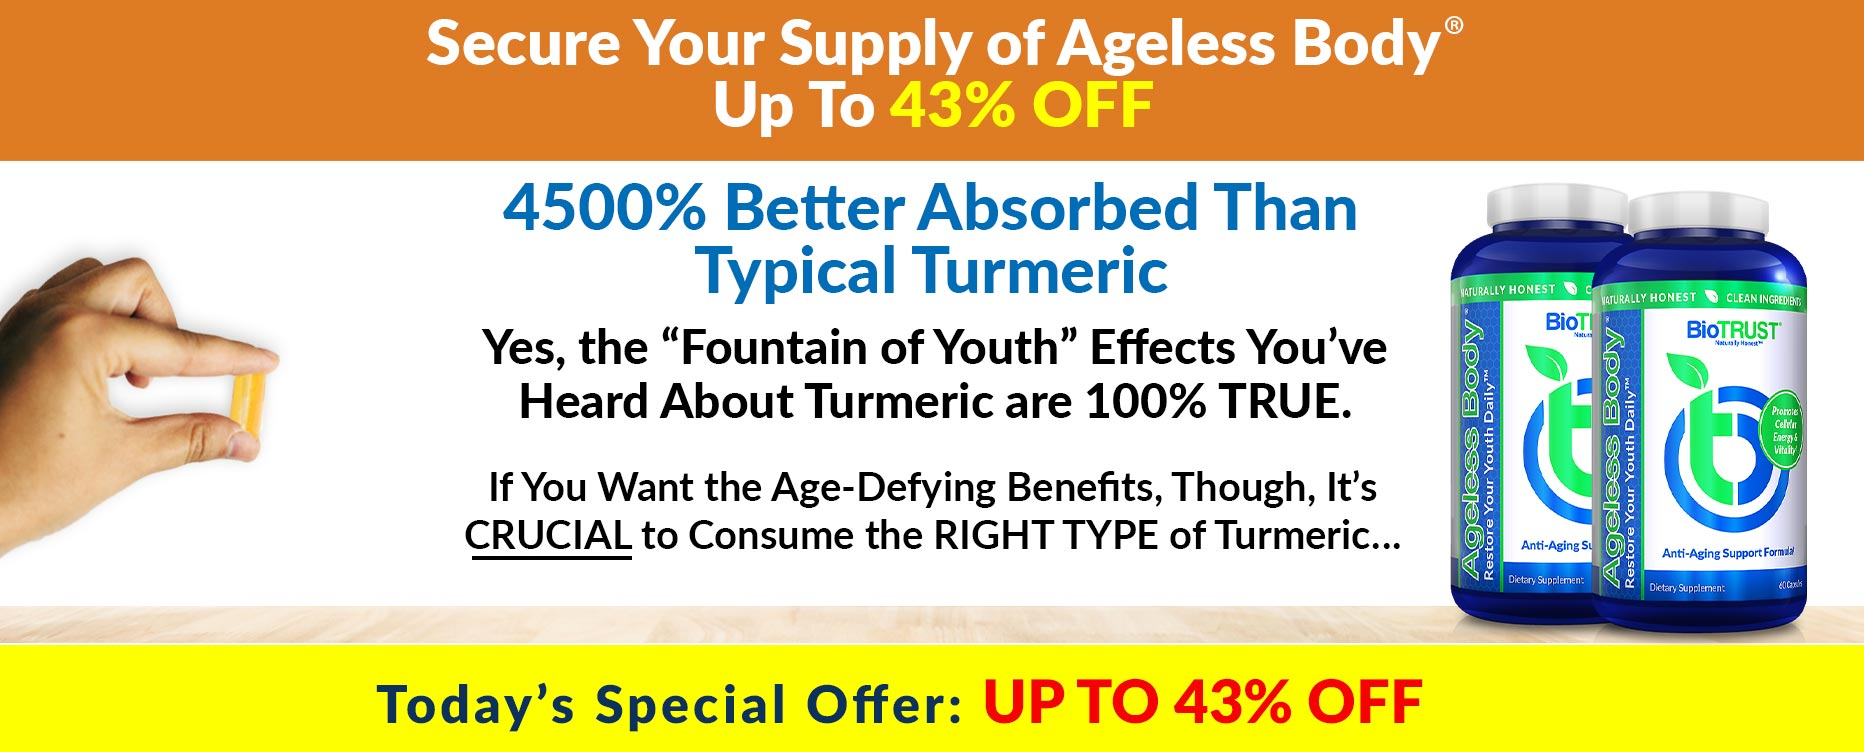 Secure Your Supply of Ageless Body